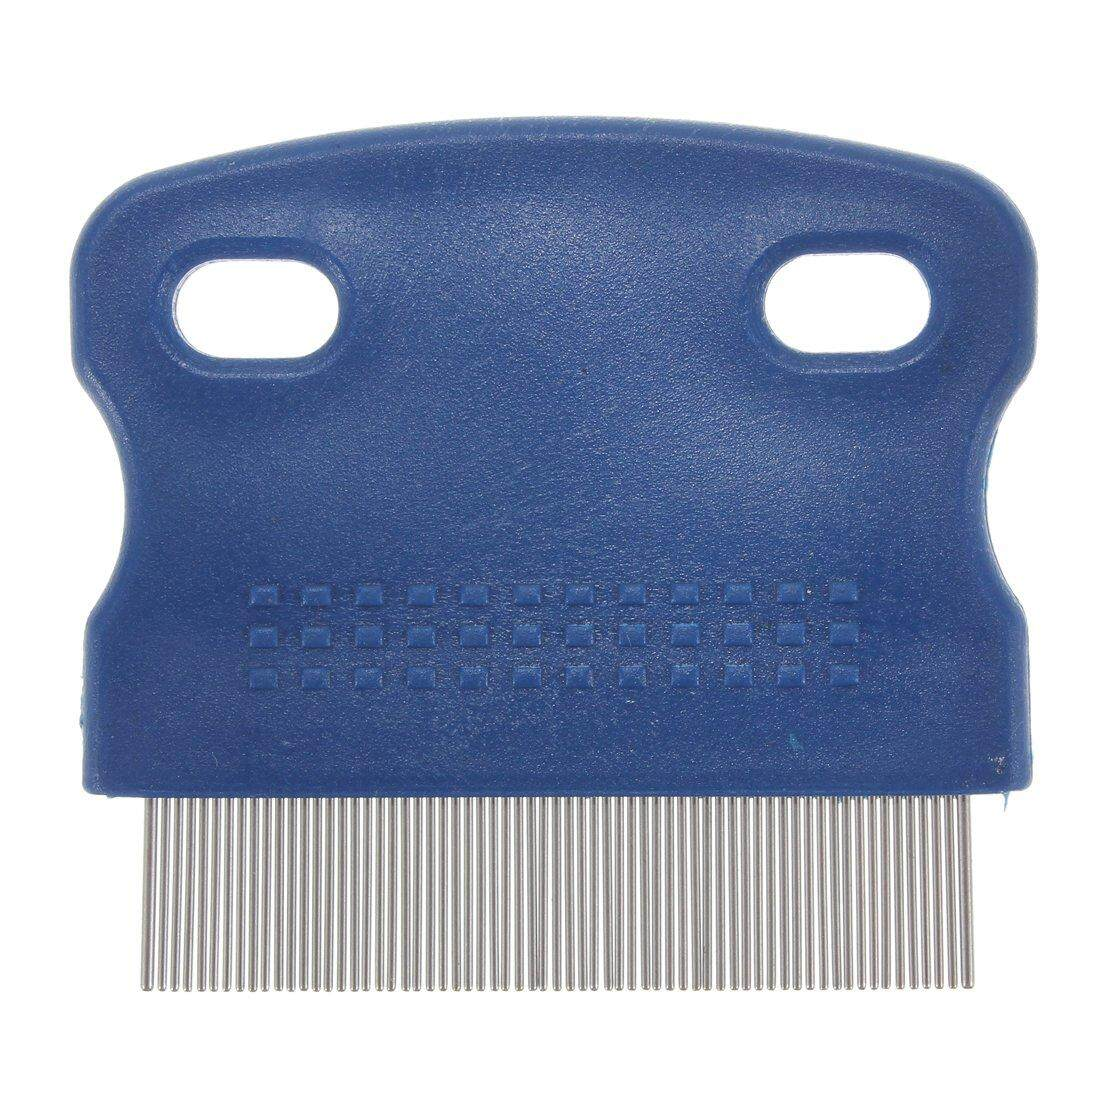 Dog Brush Dog Comb Flea Comb Lice Comb Nit Comb Fur Comb Pet Comb Grooming By Yoyonow.